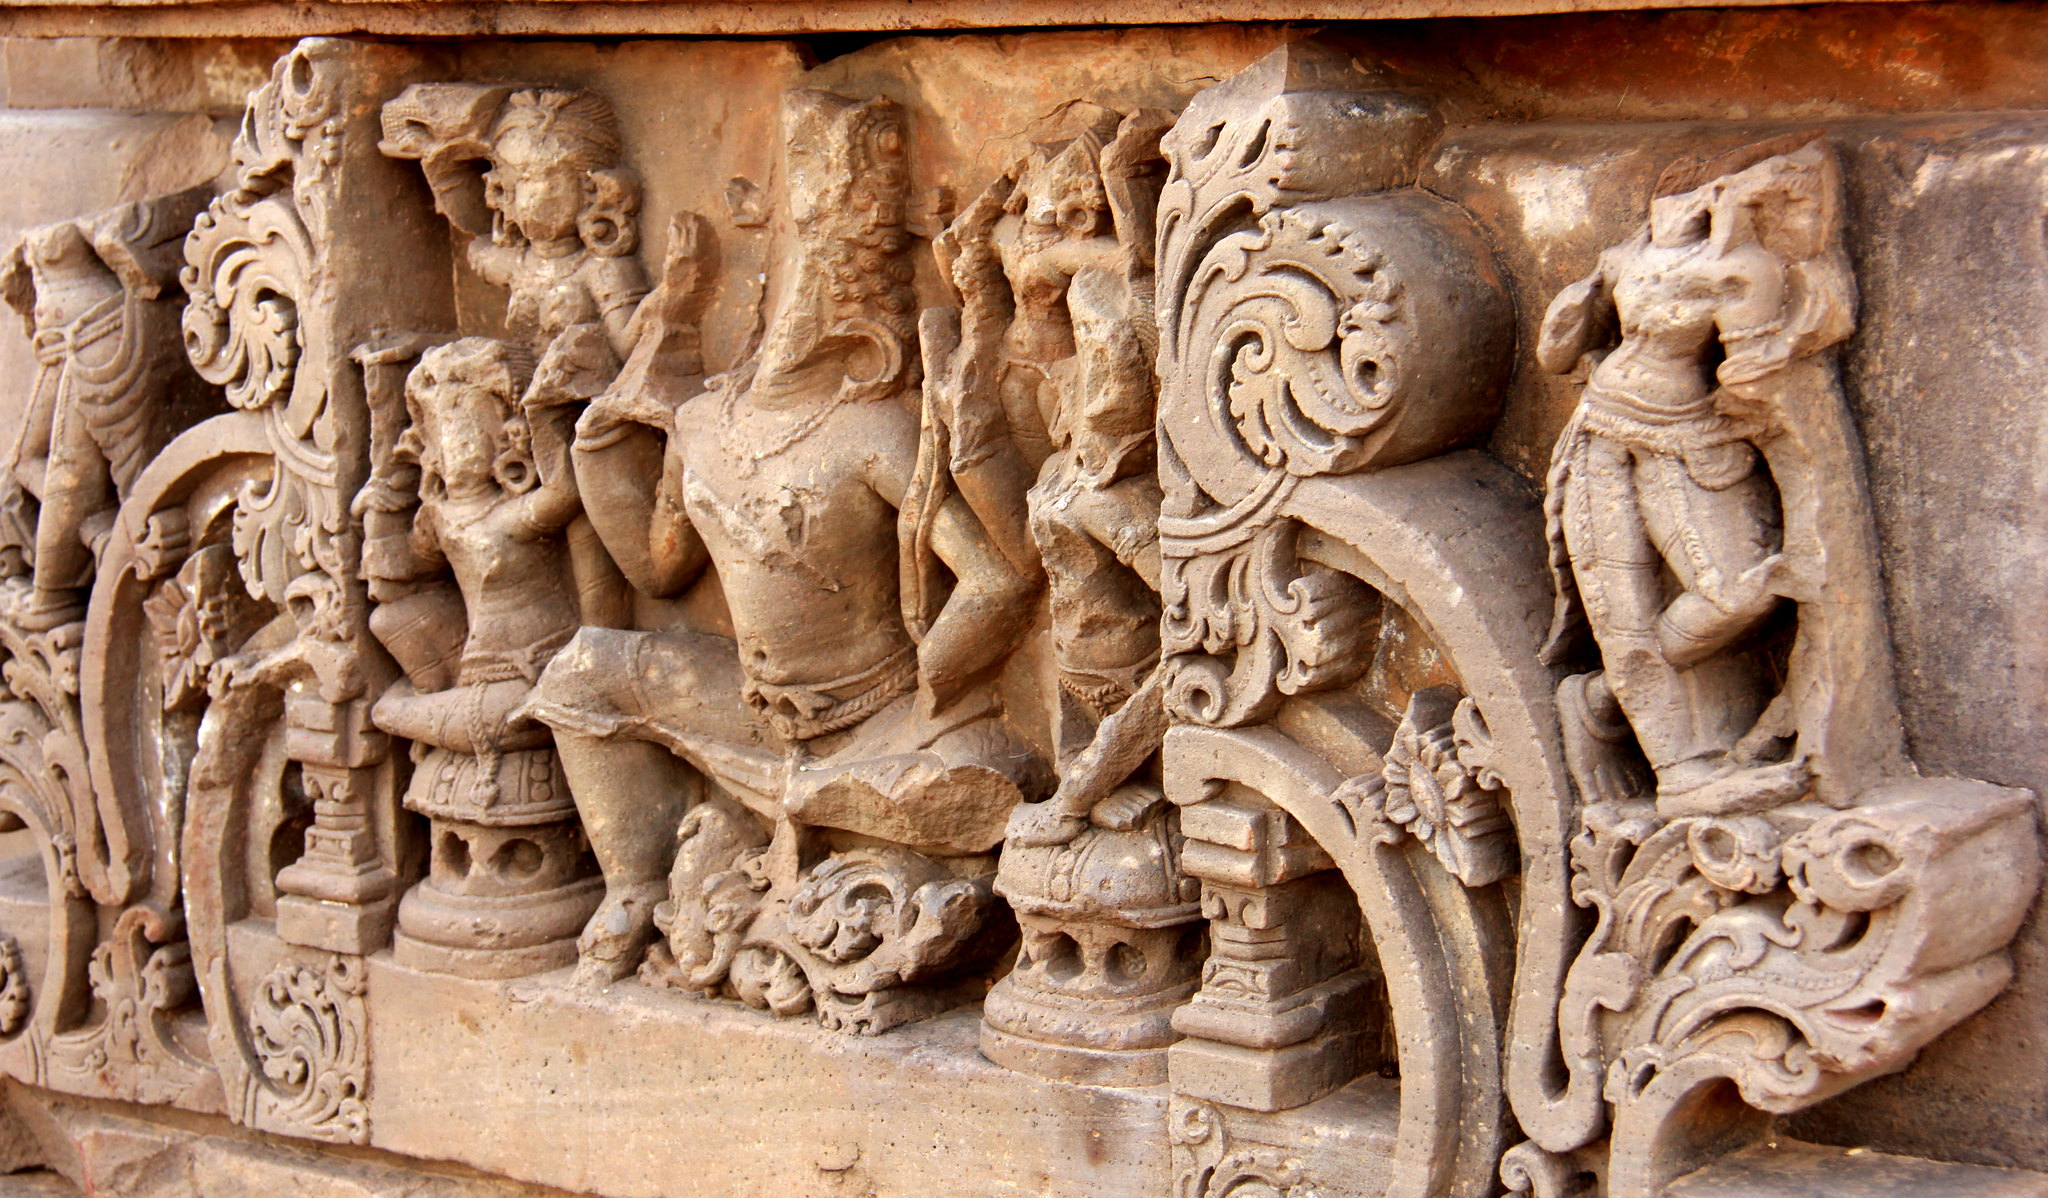 Carvings found at Abhaneri Temple